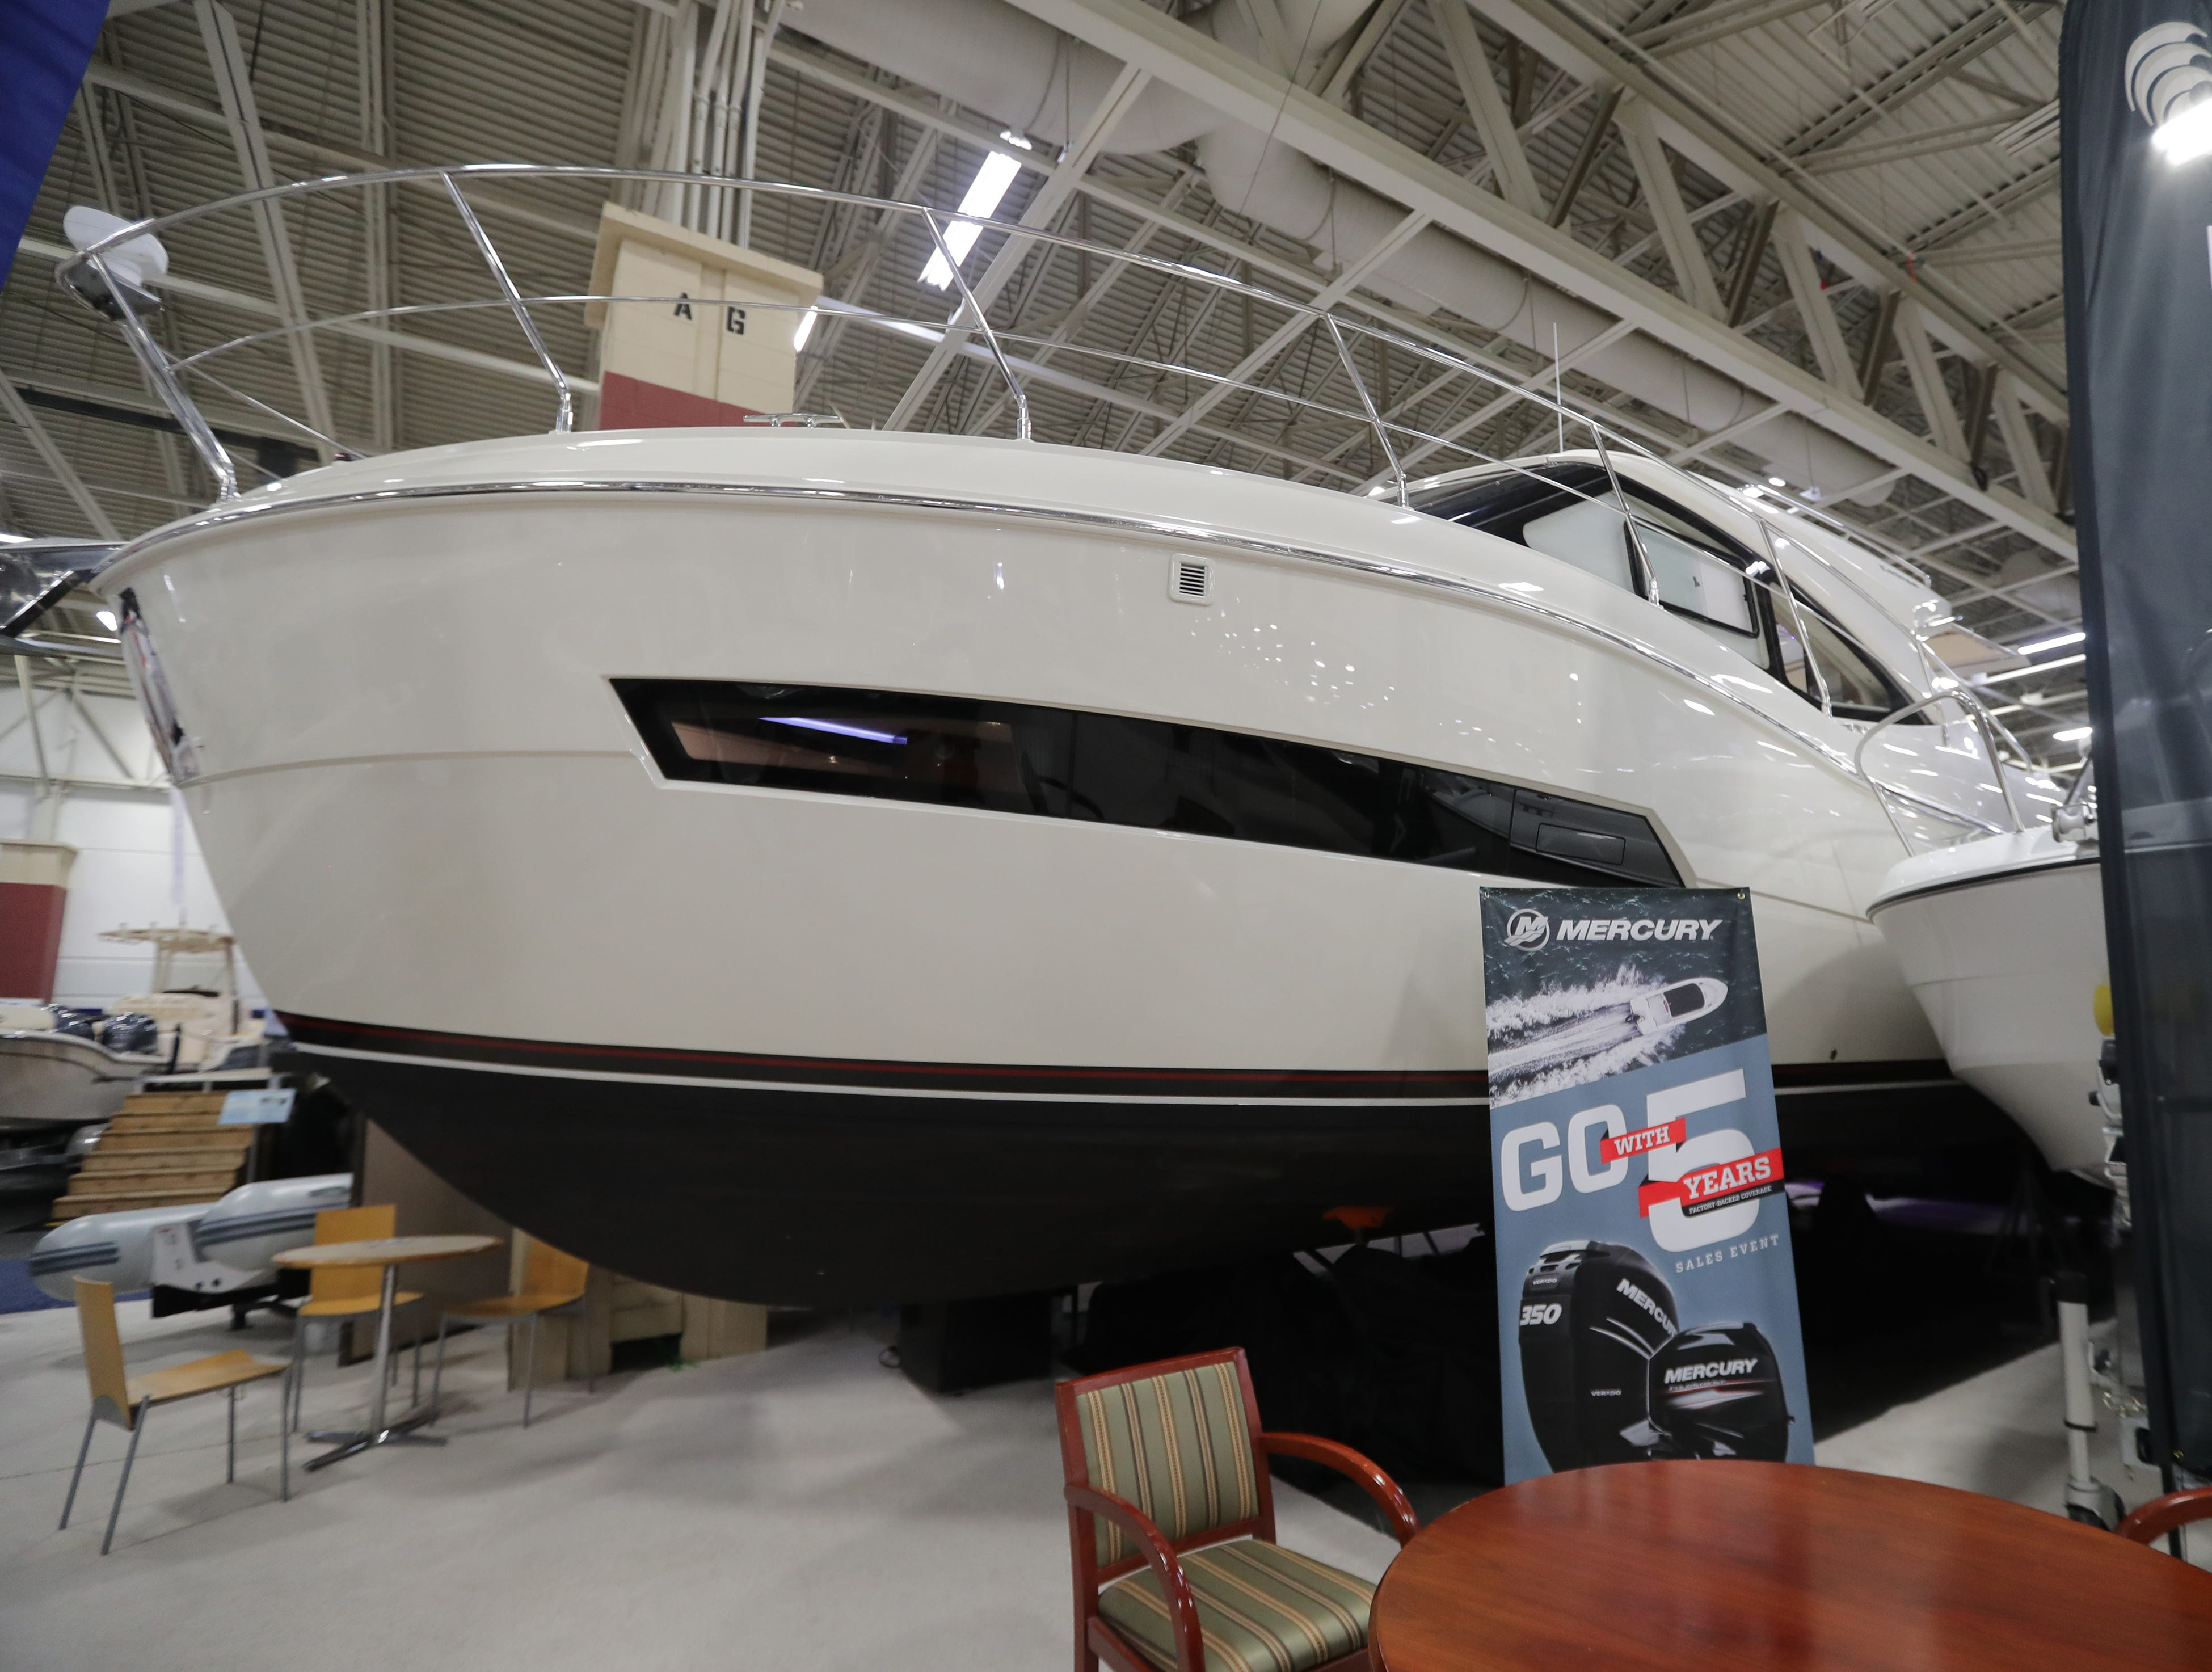 A 2019 37-foot Carver yacht, which lists for   $459,000.